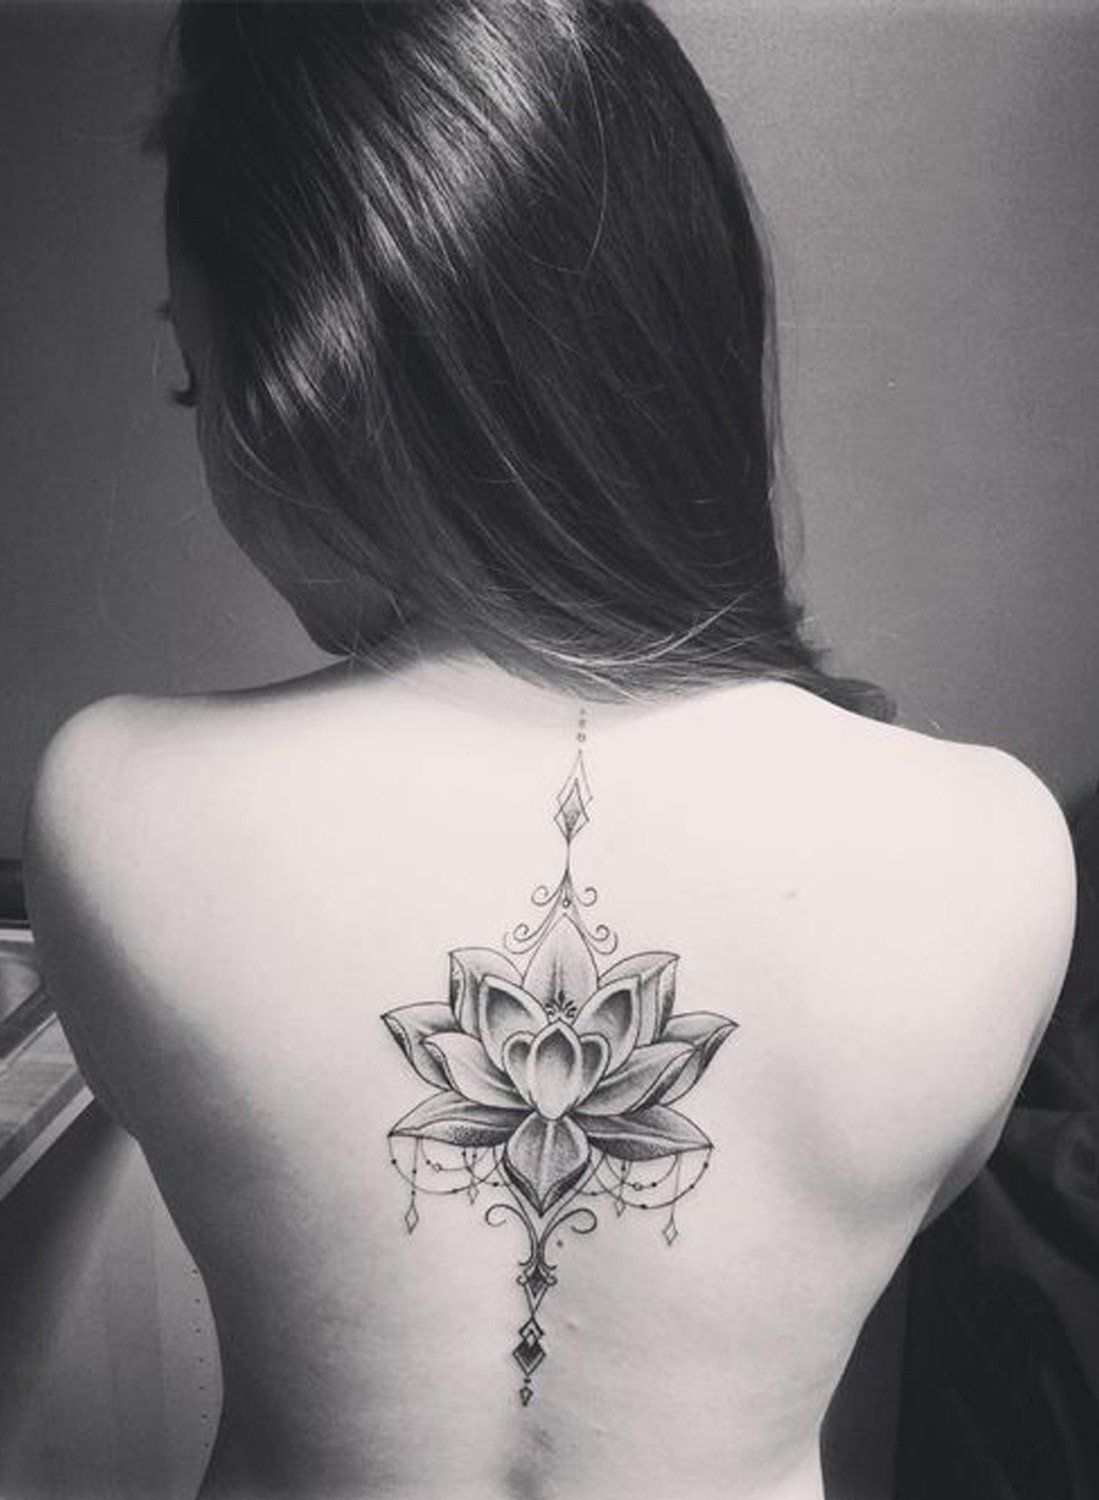 100 most popular lotus tattoos ideas for women spine tattoo 100 most popular lotus tattoos ideas for women izmirmasajfo Images